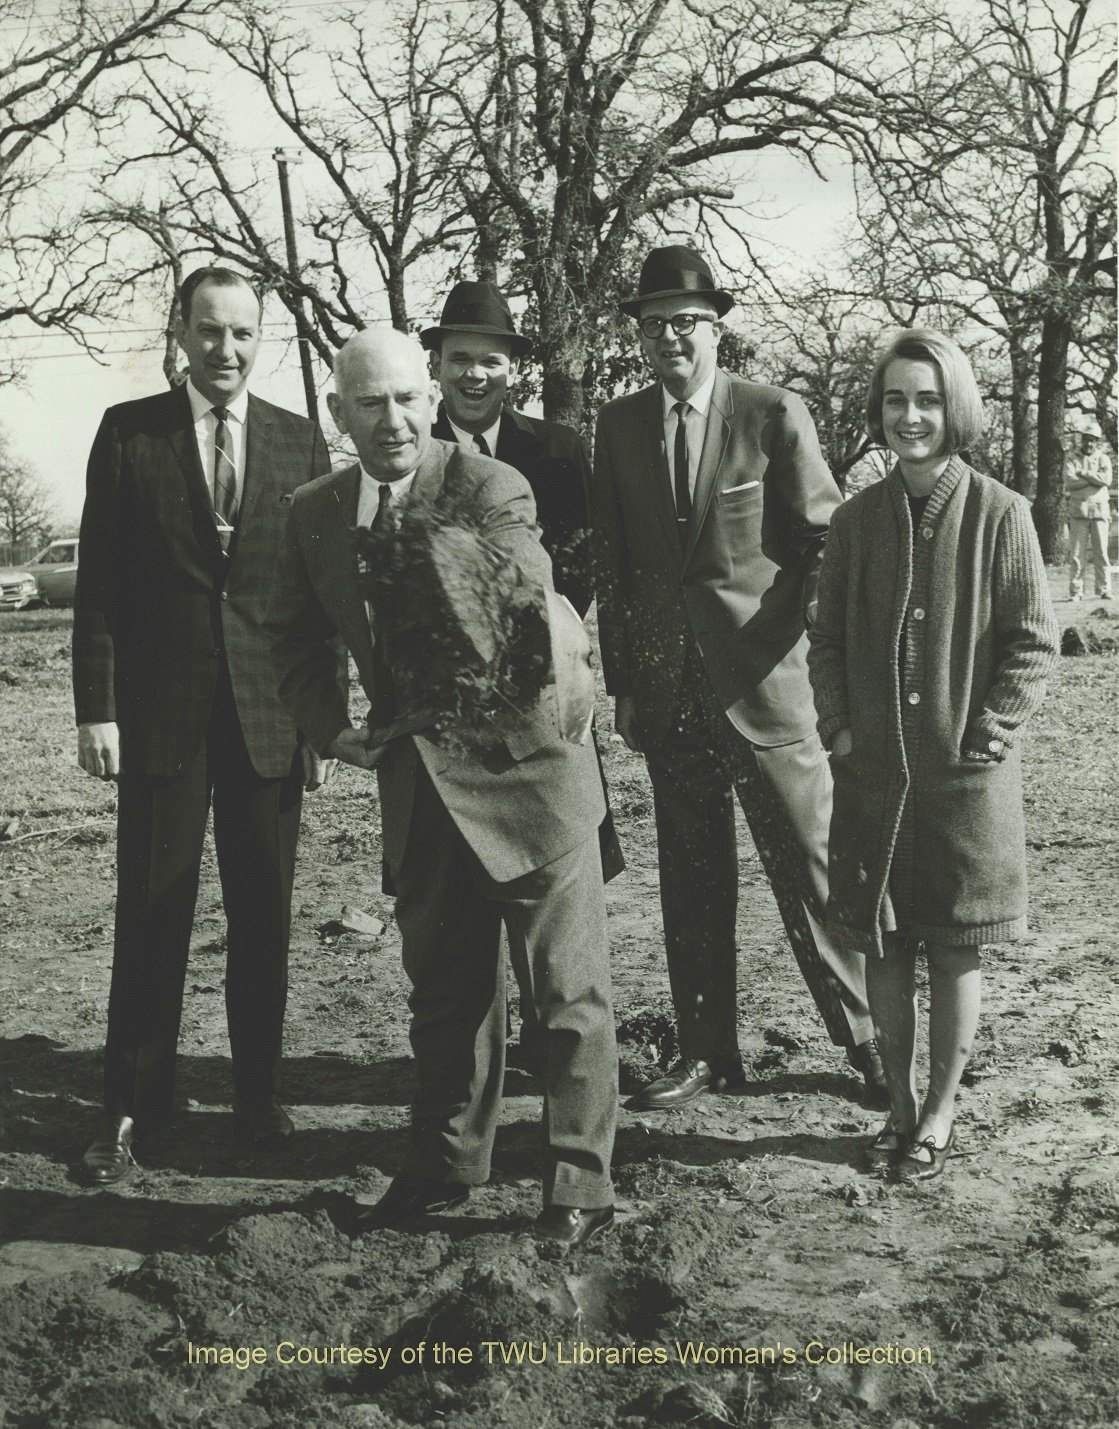 Stark Hall ground breaking ceremony (Jan. 4, 1966). Pictured: Dr. John Guinn, Dr. L.L. Armstrong of Denton First Baptist Church, Bill Drenner of Denton Chamber of Commerce, Mayor Warren Whitson, and TWU student, Paula Rich. Courtesy of TWU Libraries.